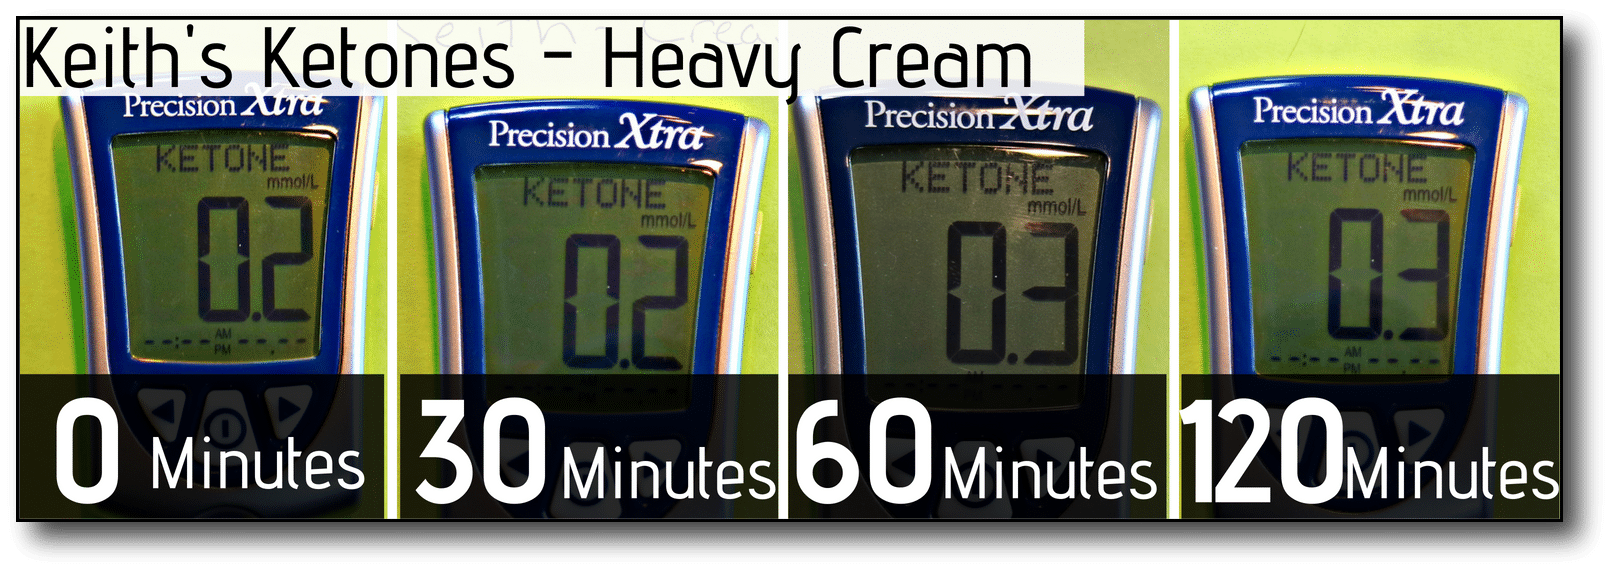 coffee and intermittent fasting-keith ketone heavy cream